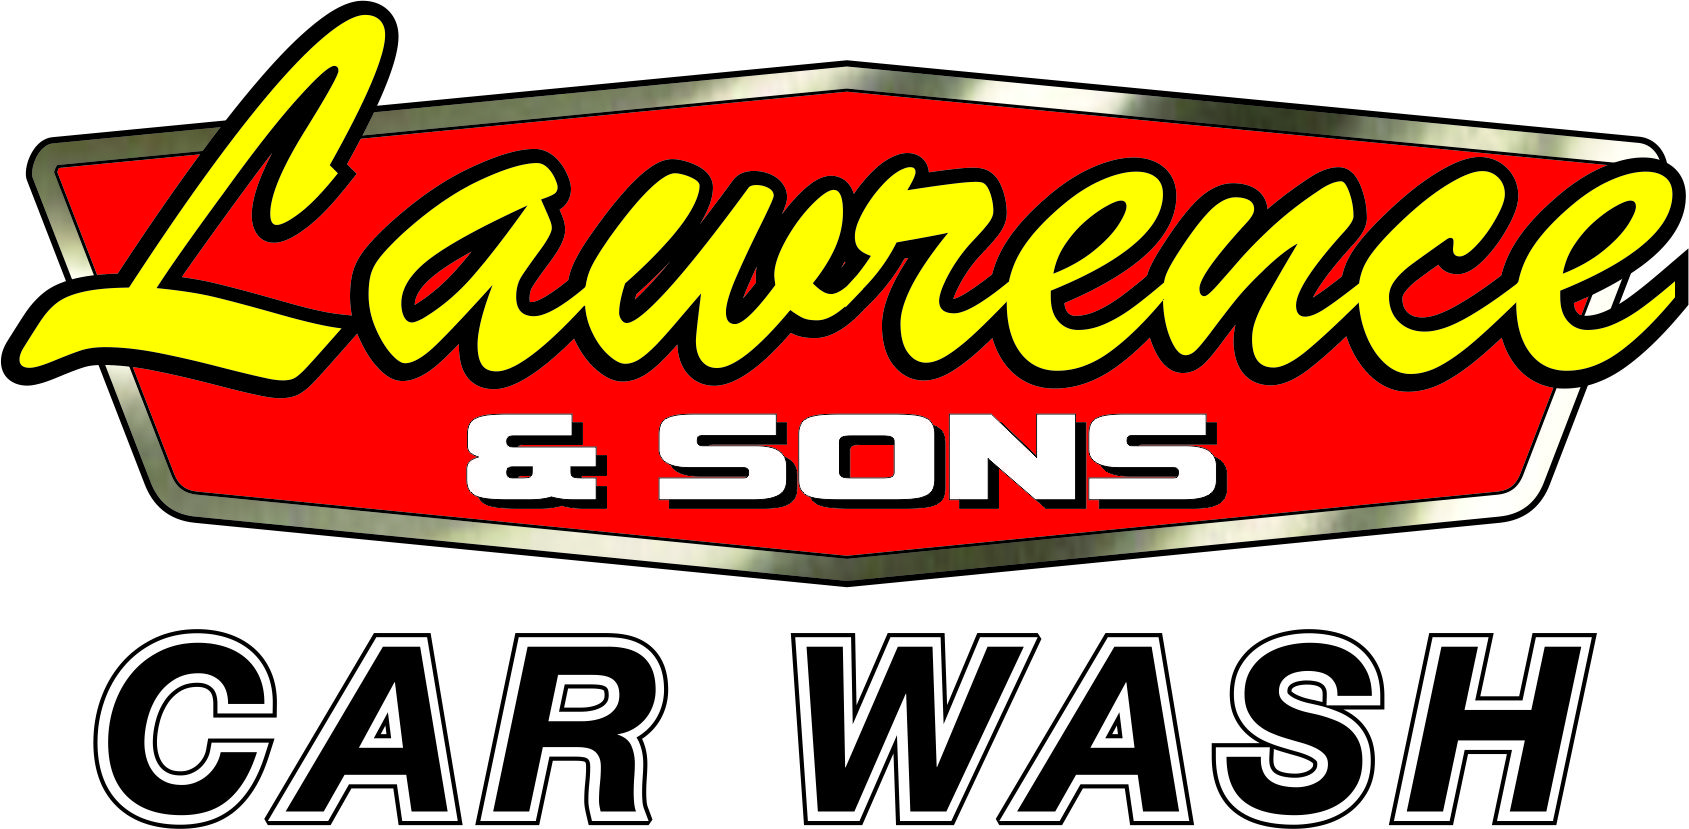 LAWRENCE & SONS LOGO